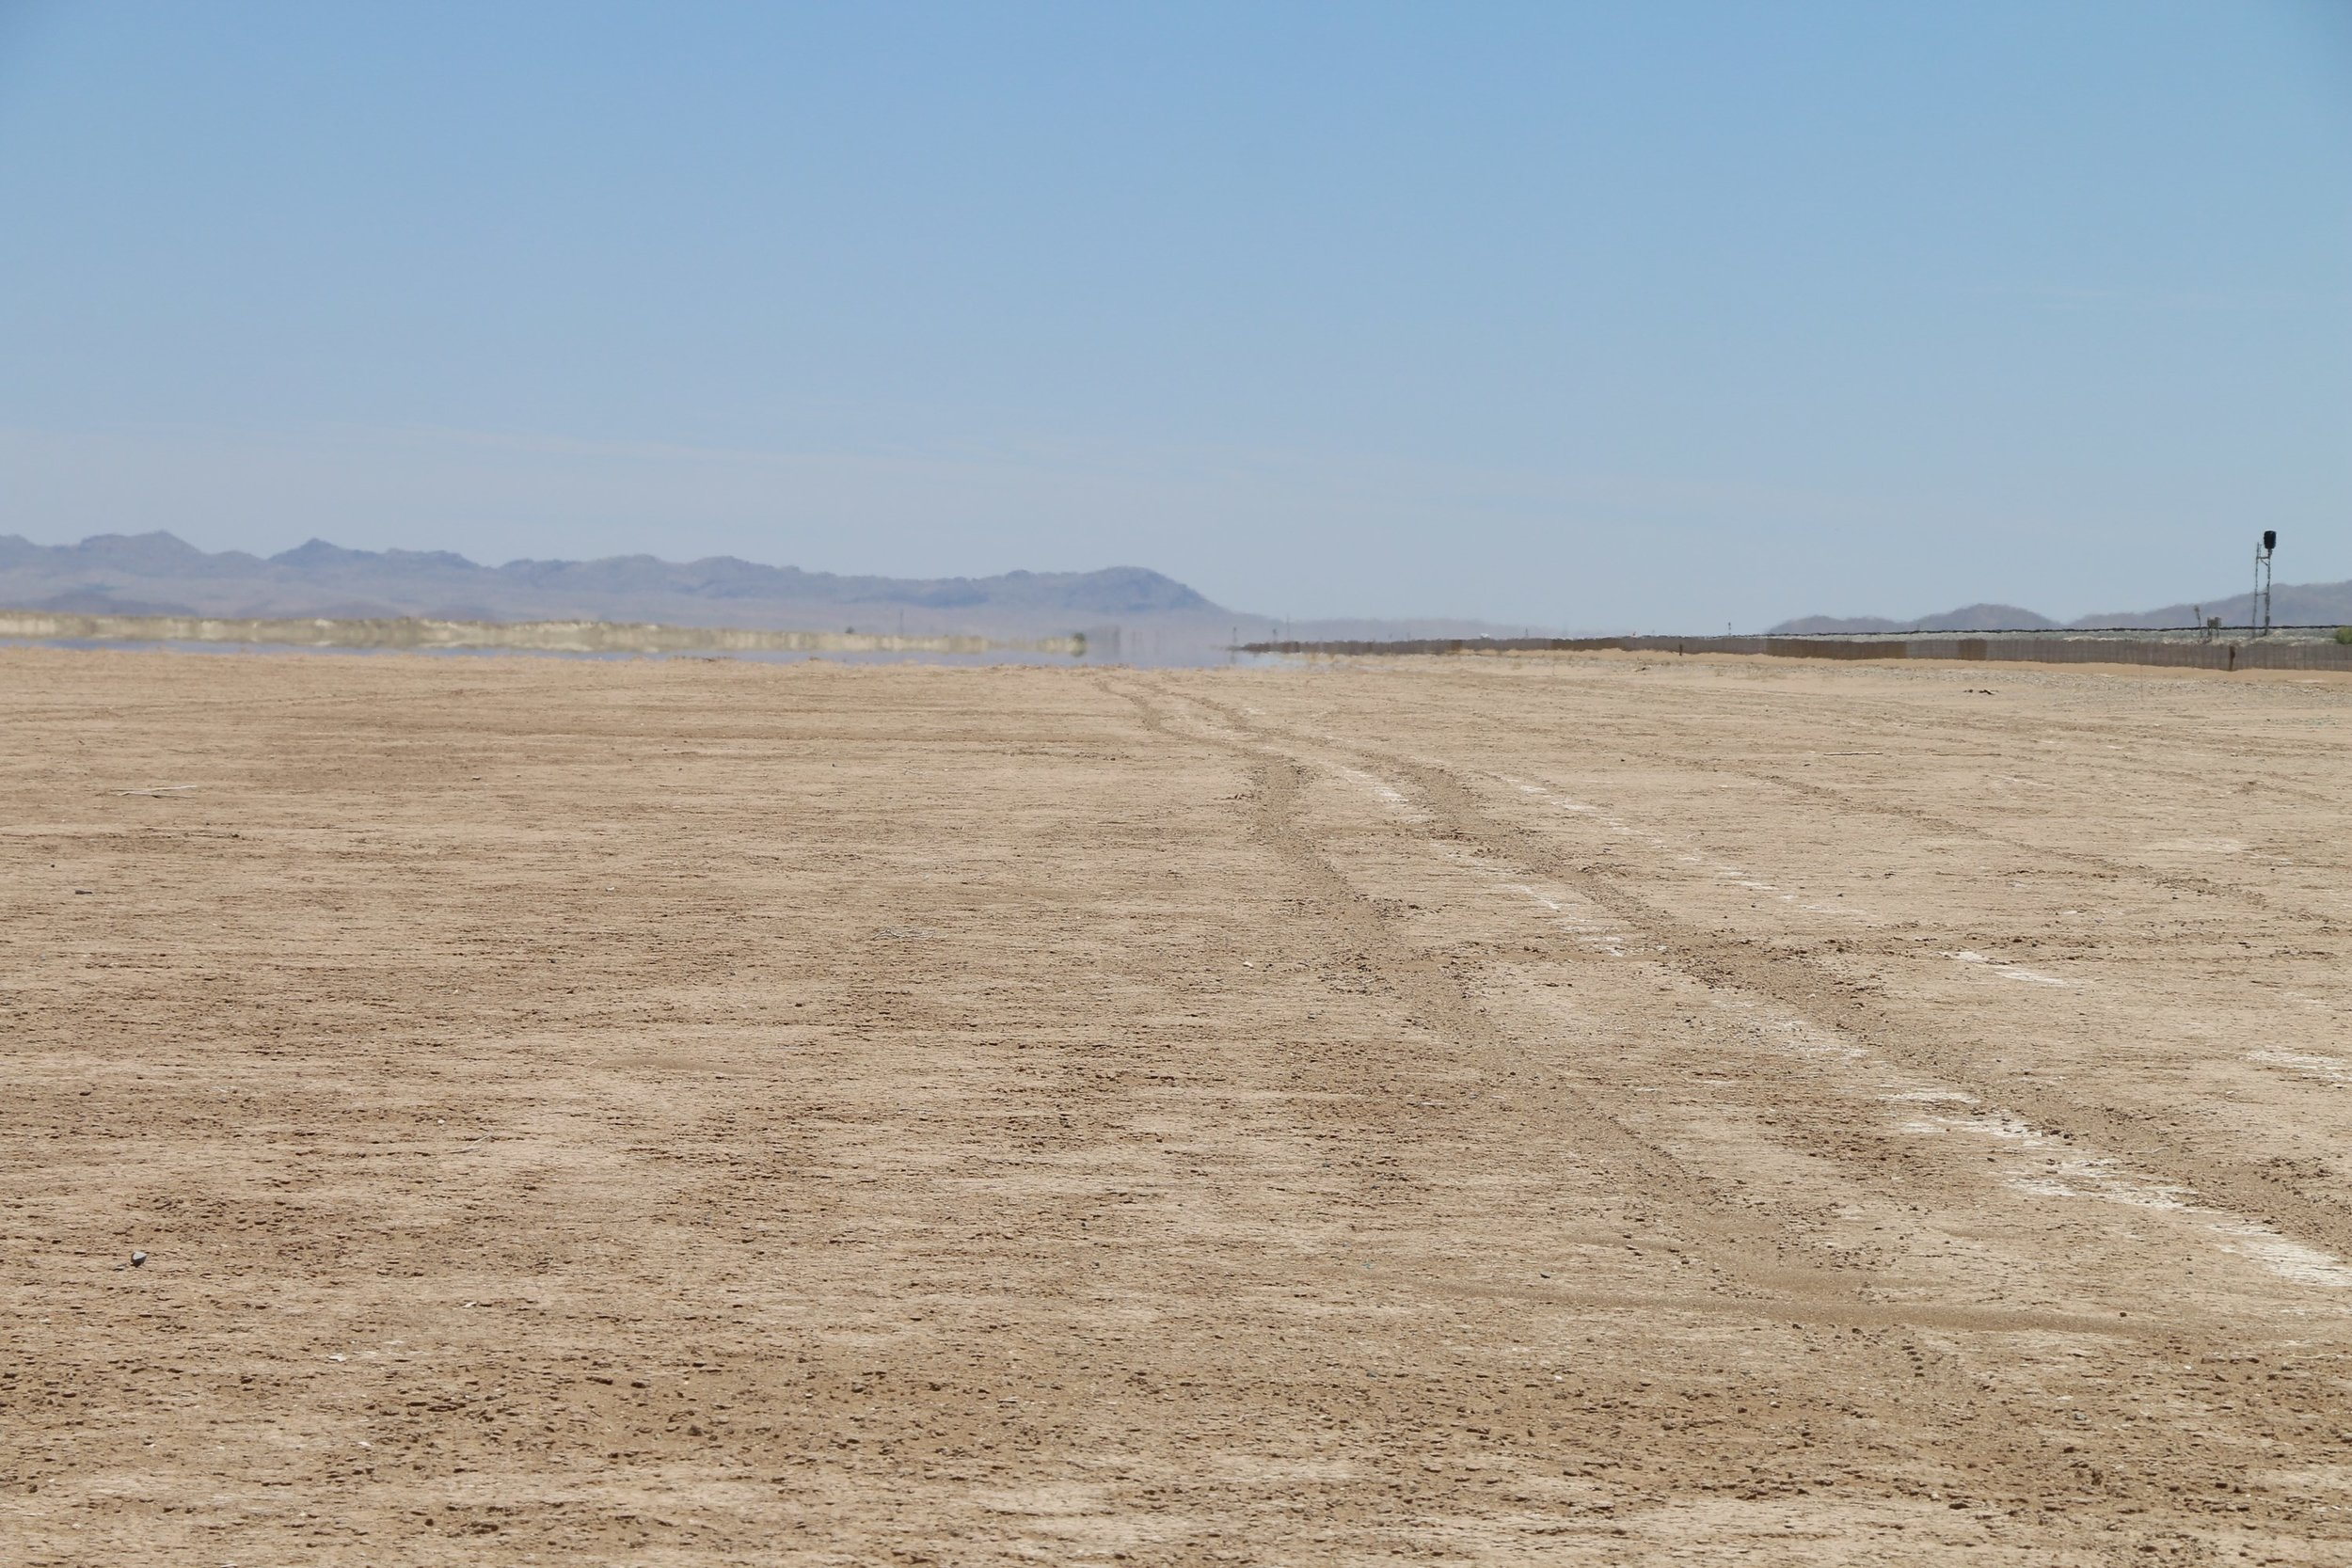 Looking east across the dry lake bed.